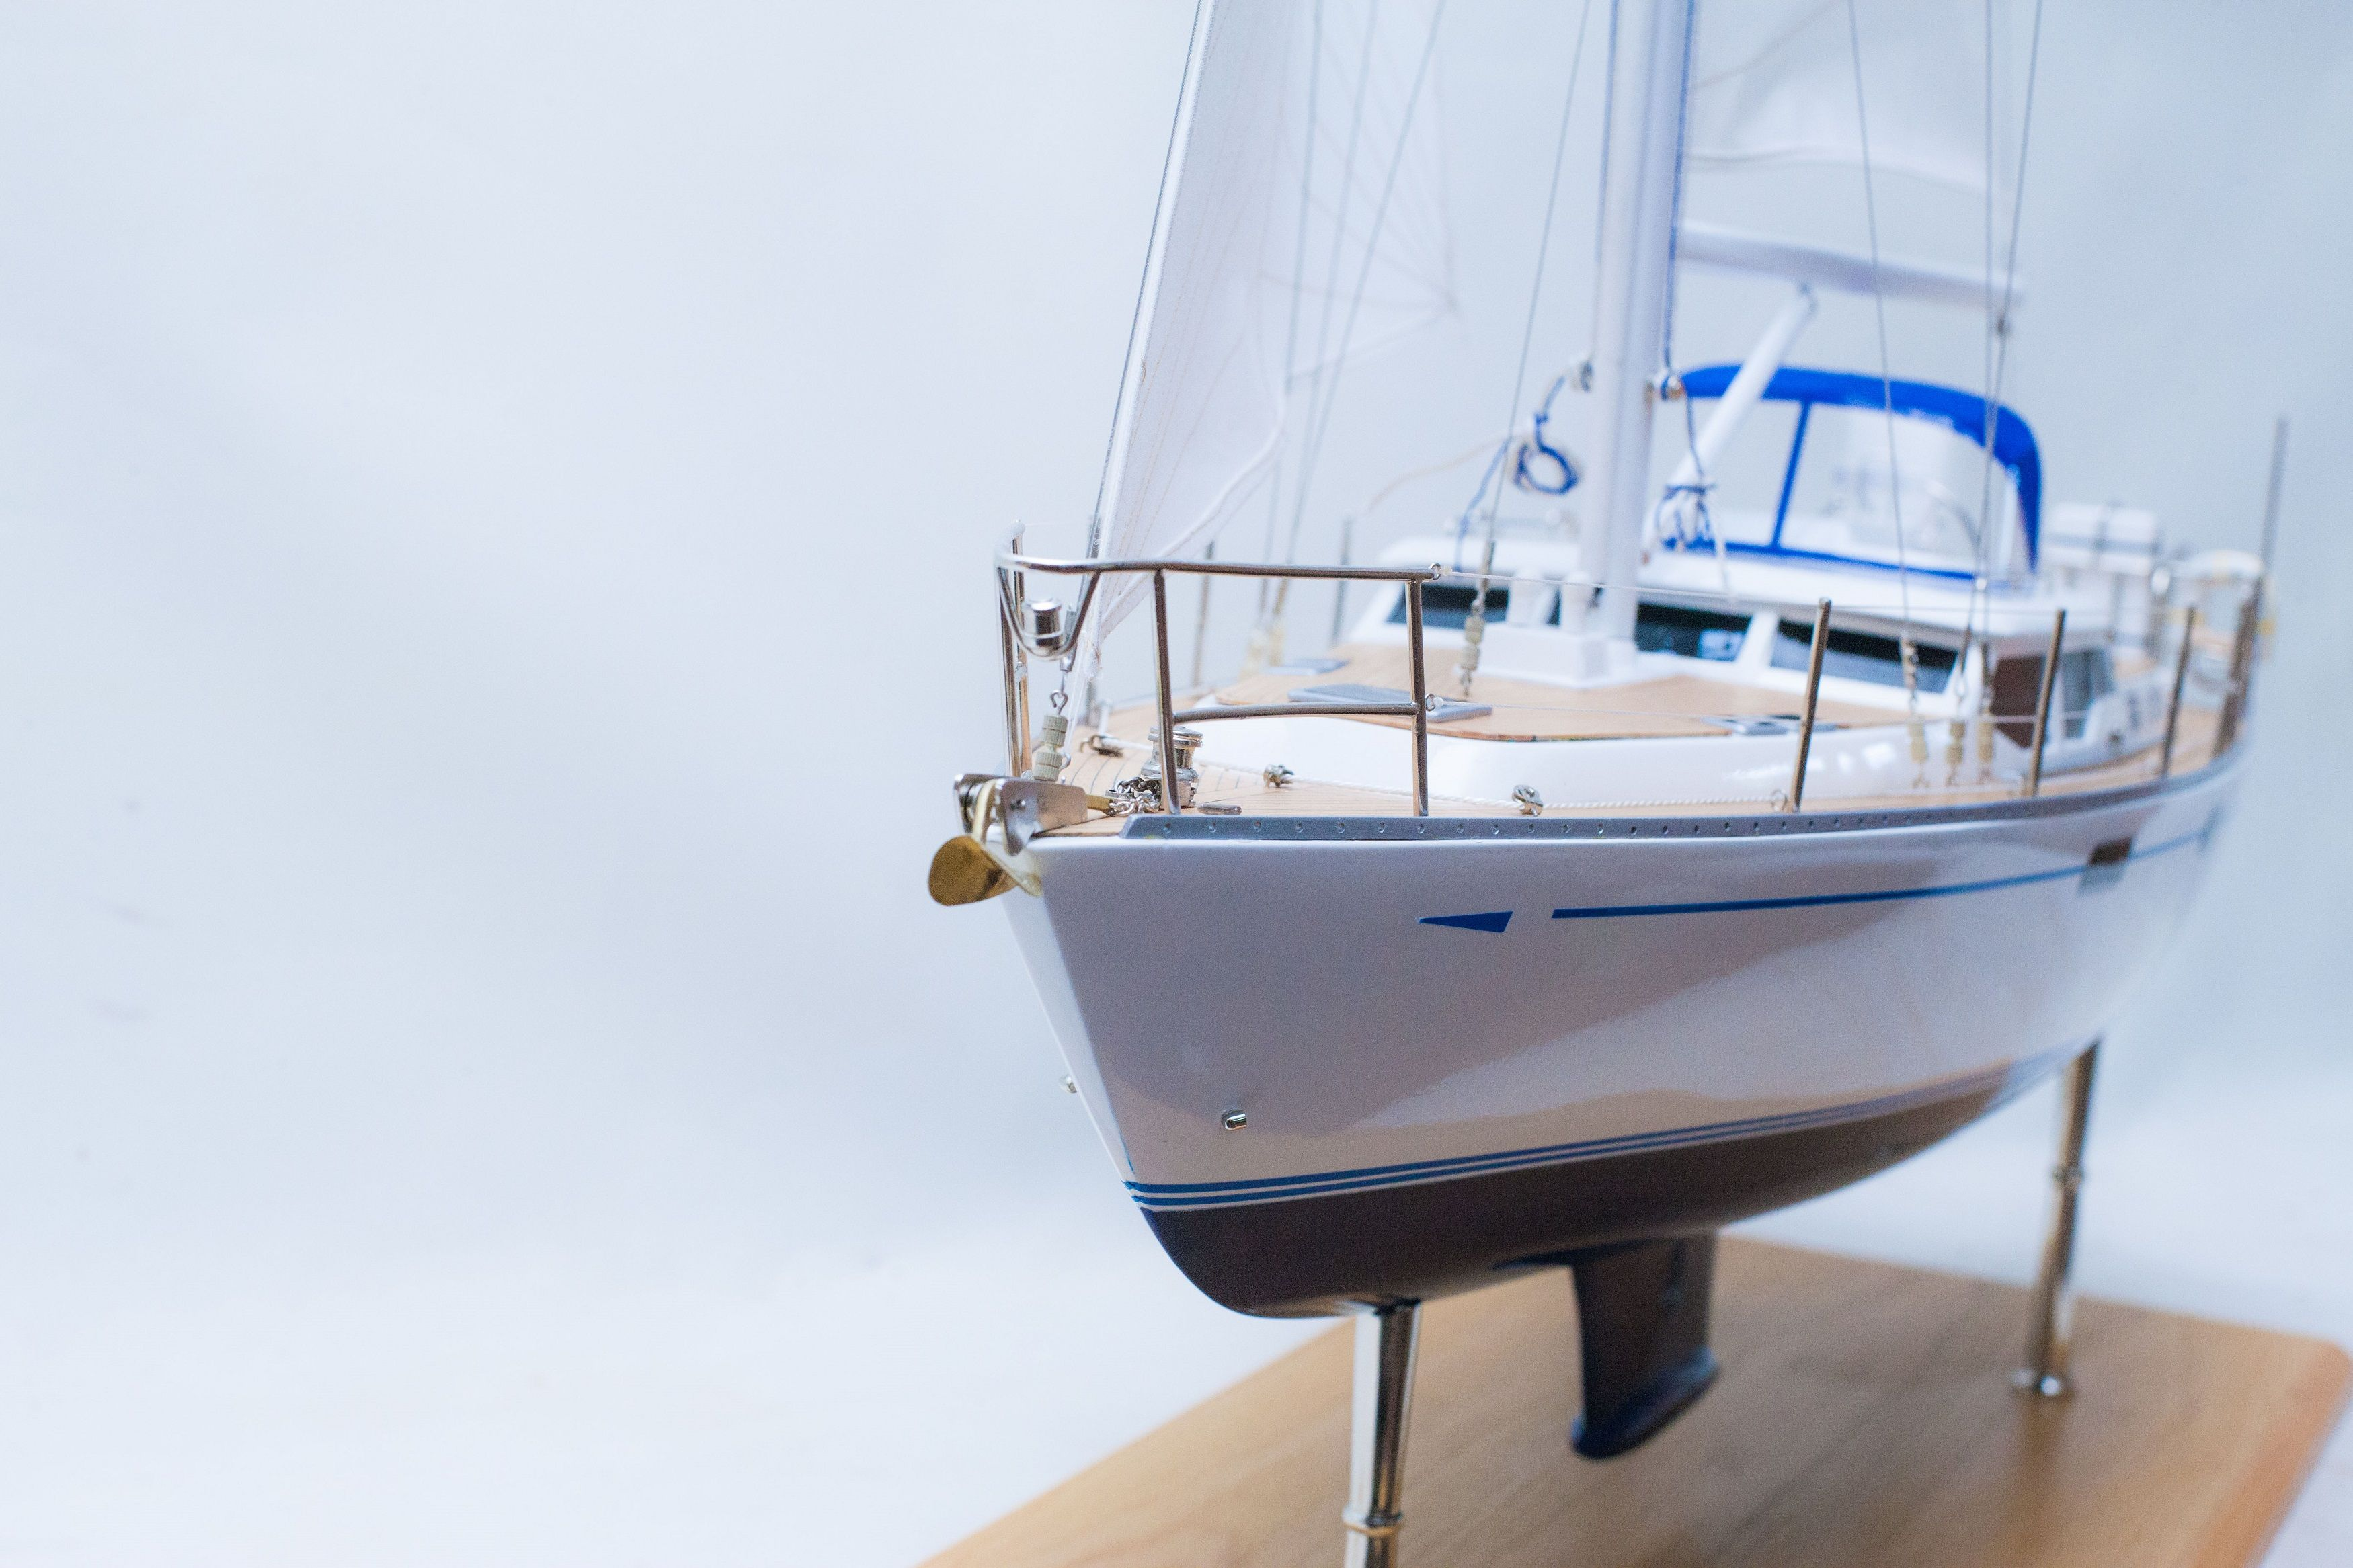 1777-9966-Oyster-45-Sailing-Yacht